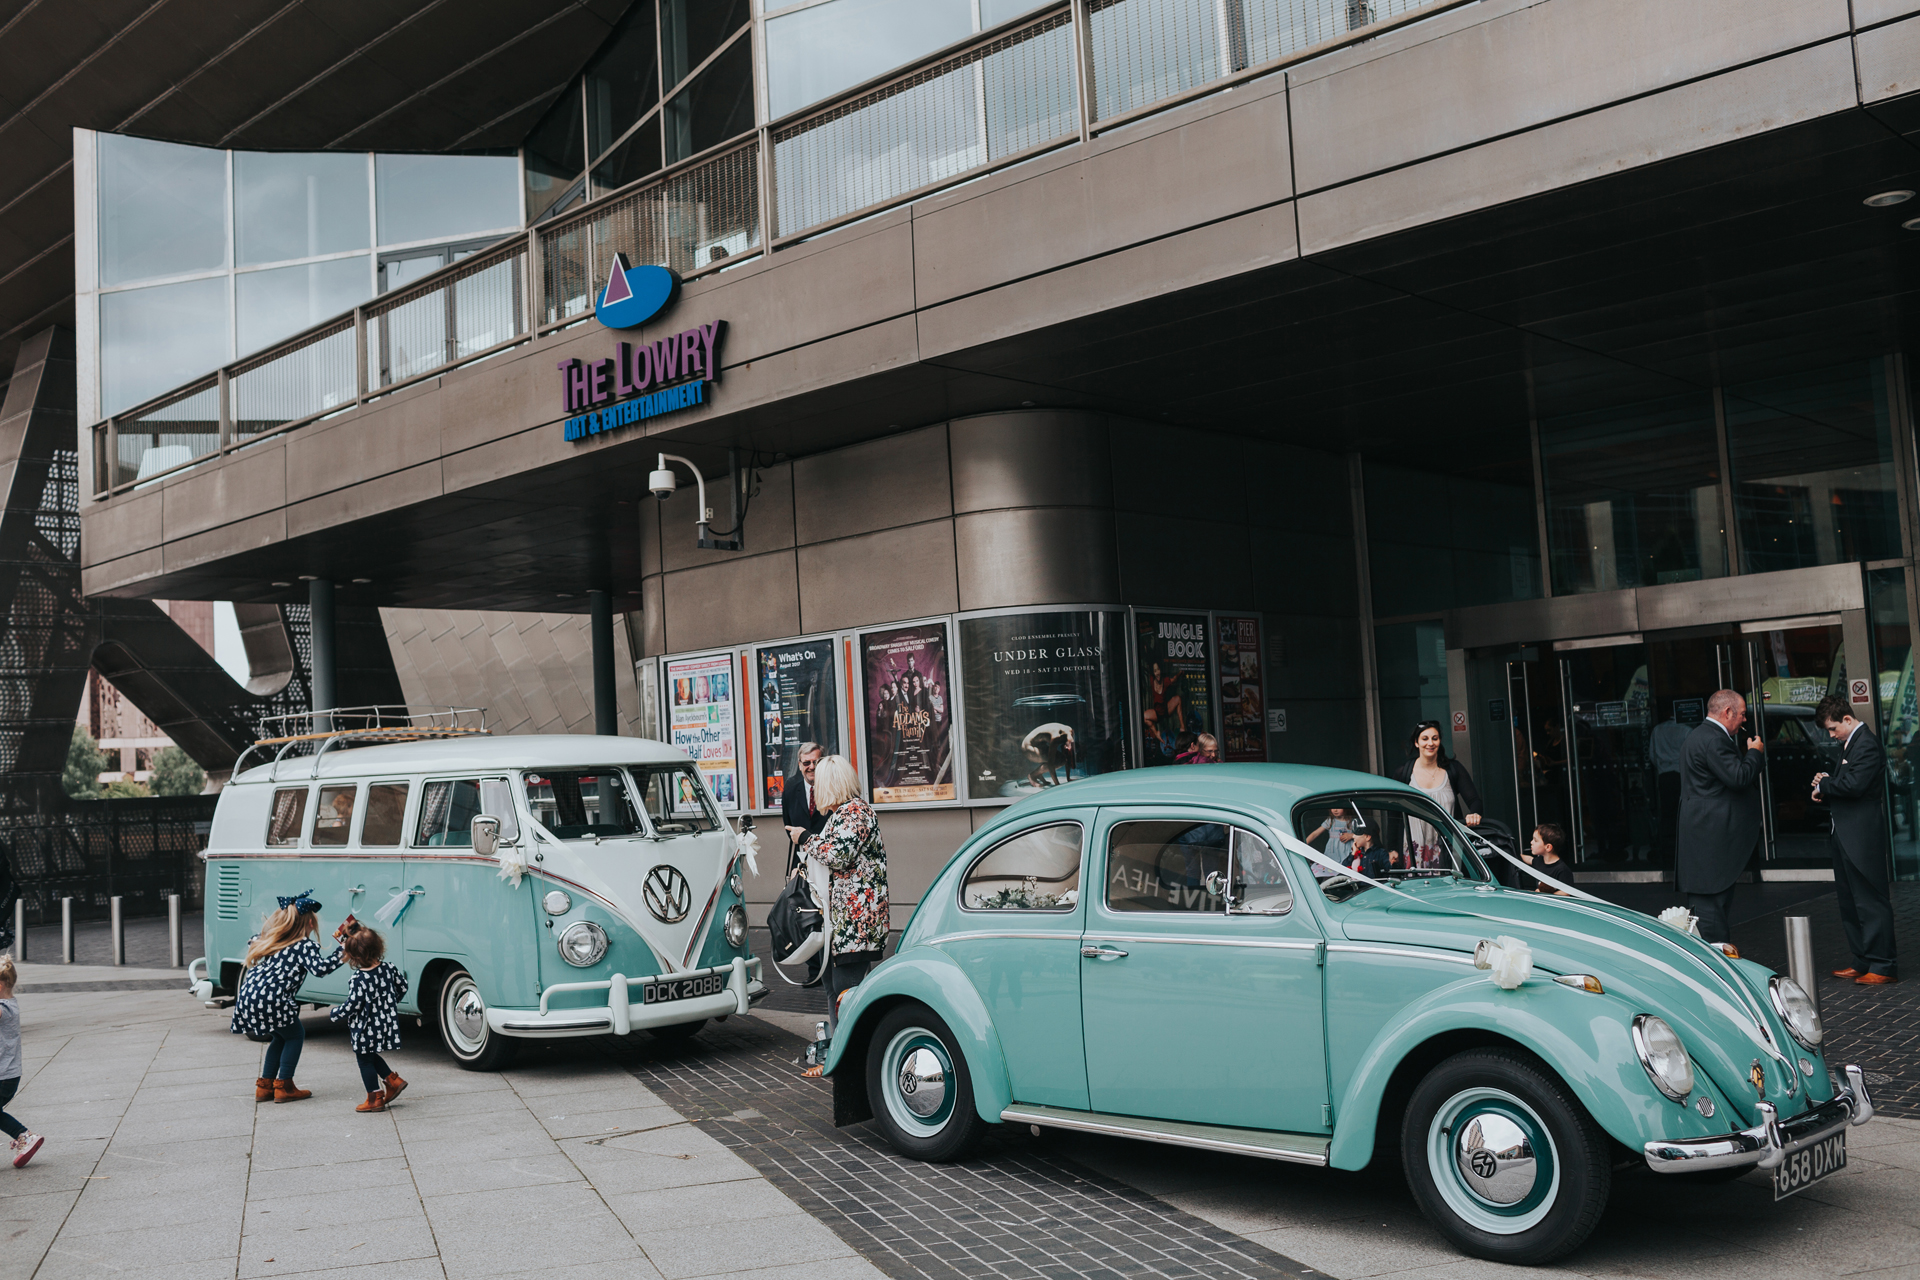 Teal Vintage Wedding Cars arrive at Lowry Theatre.